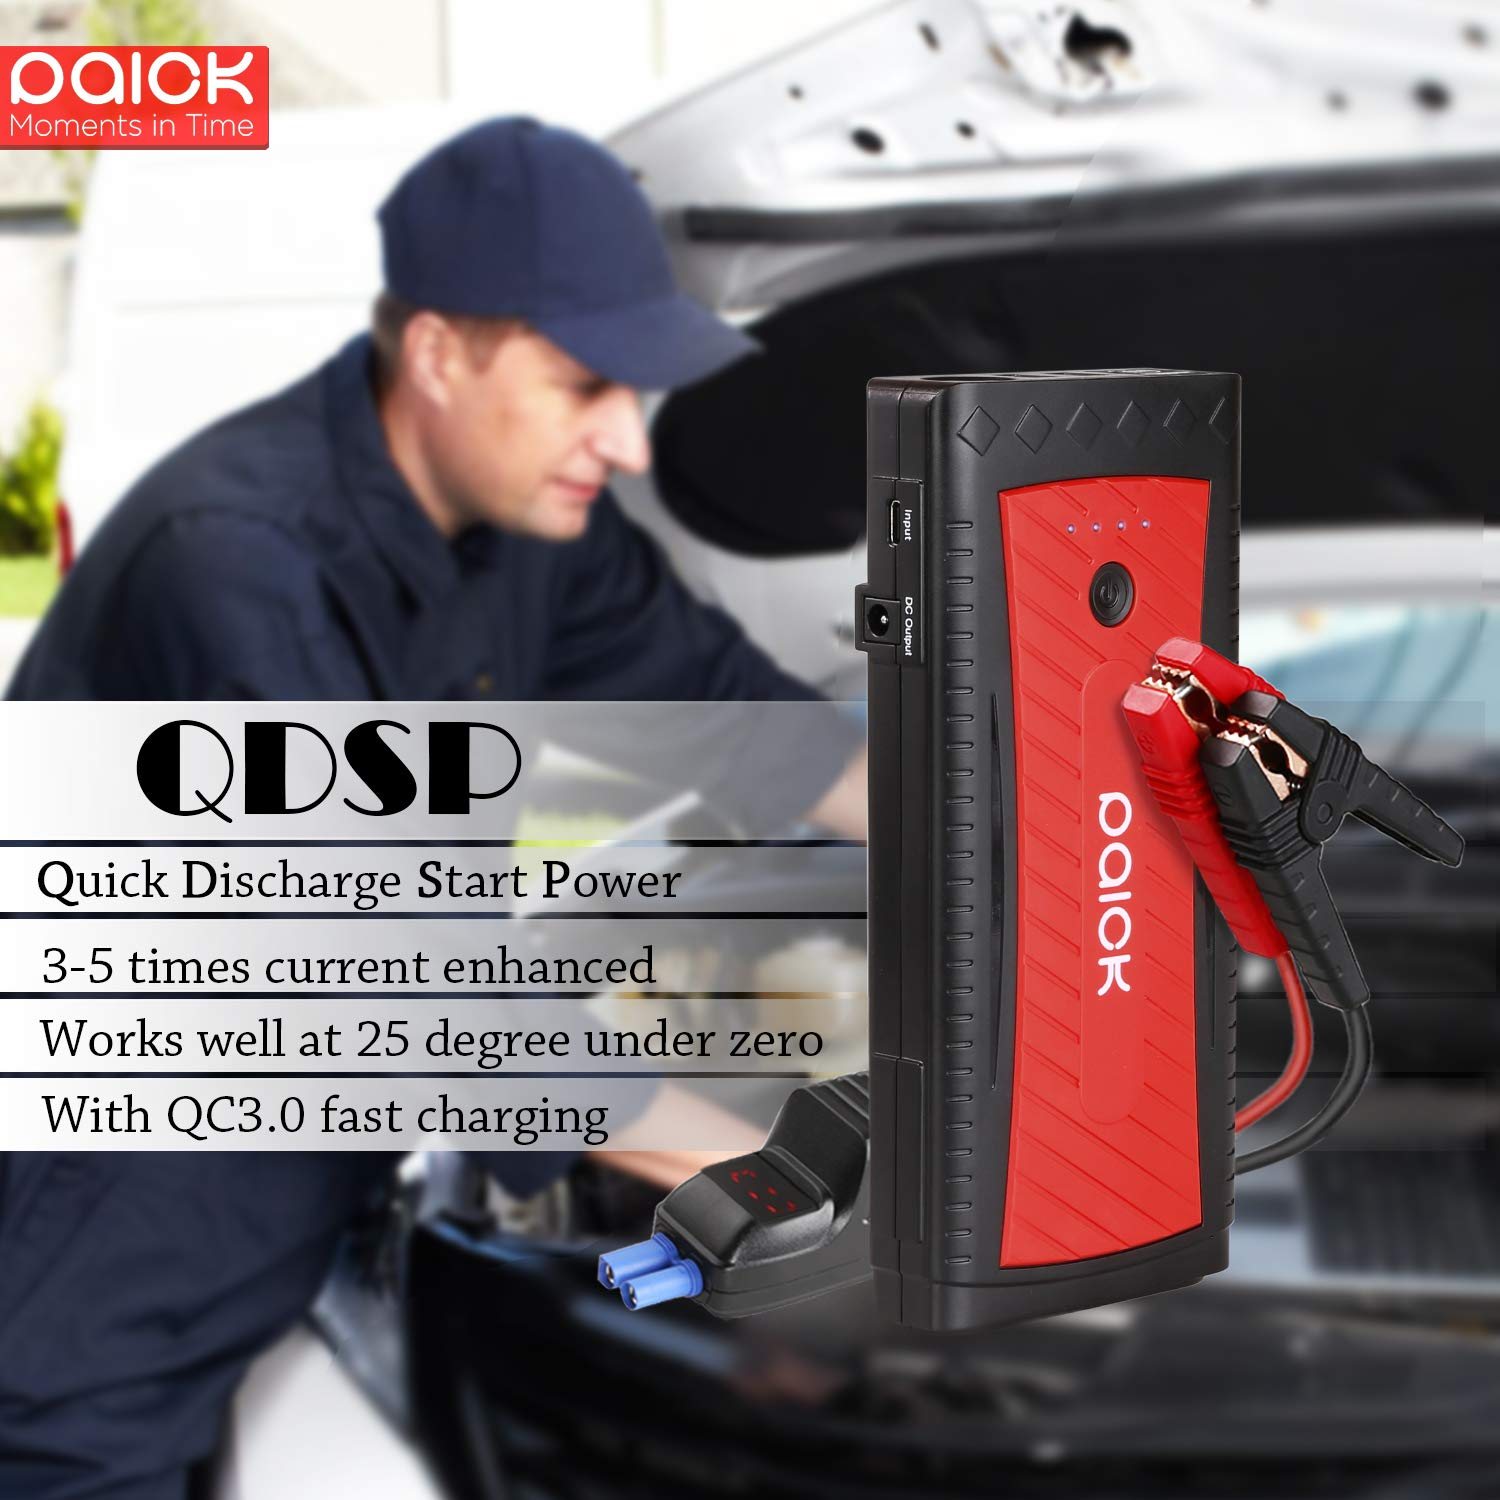 Paick Car Jump Starter 1300A Peak 3rd Generation QDSP Quick Discharge Start Power 12V Battery Booster (up to 8.0L Gas, 6.5L Diesel Engine)